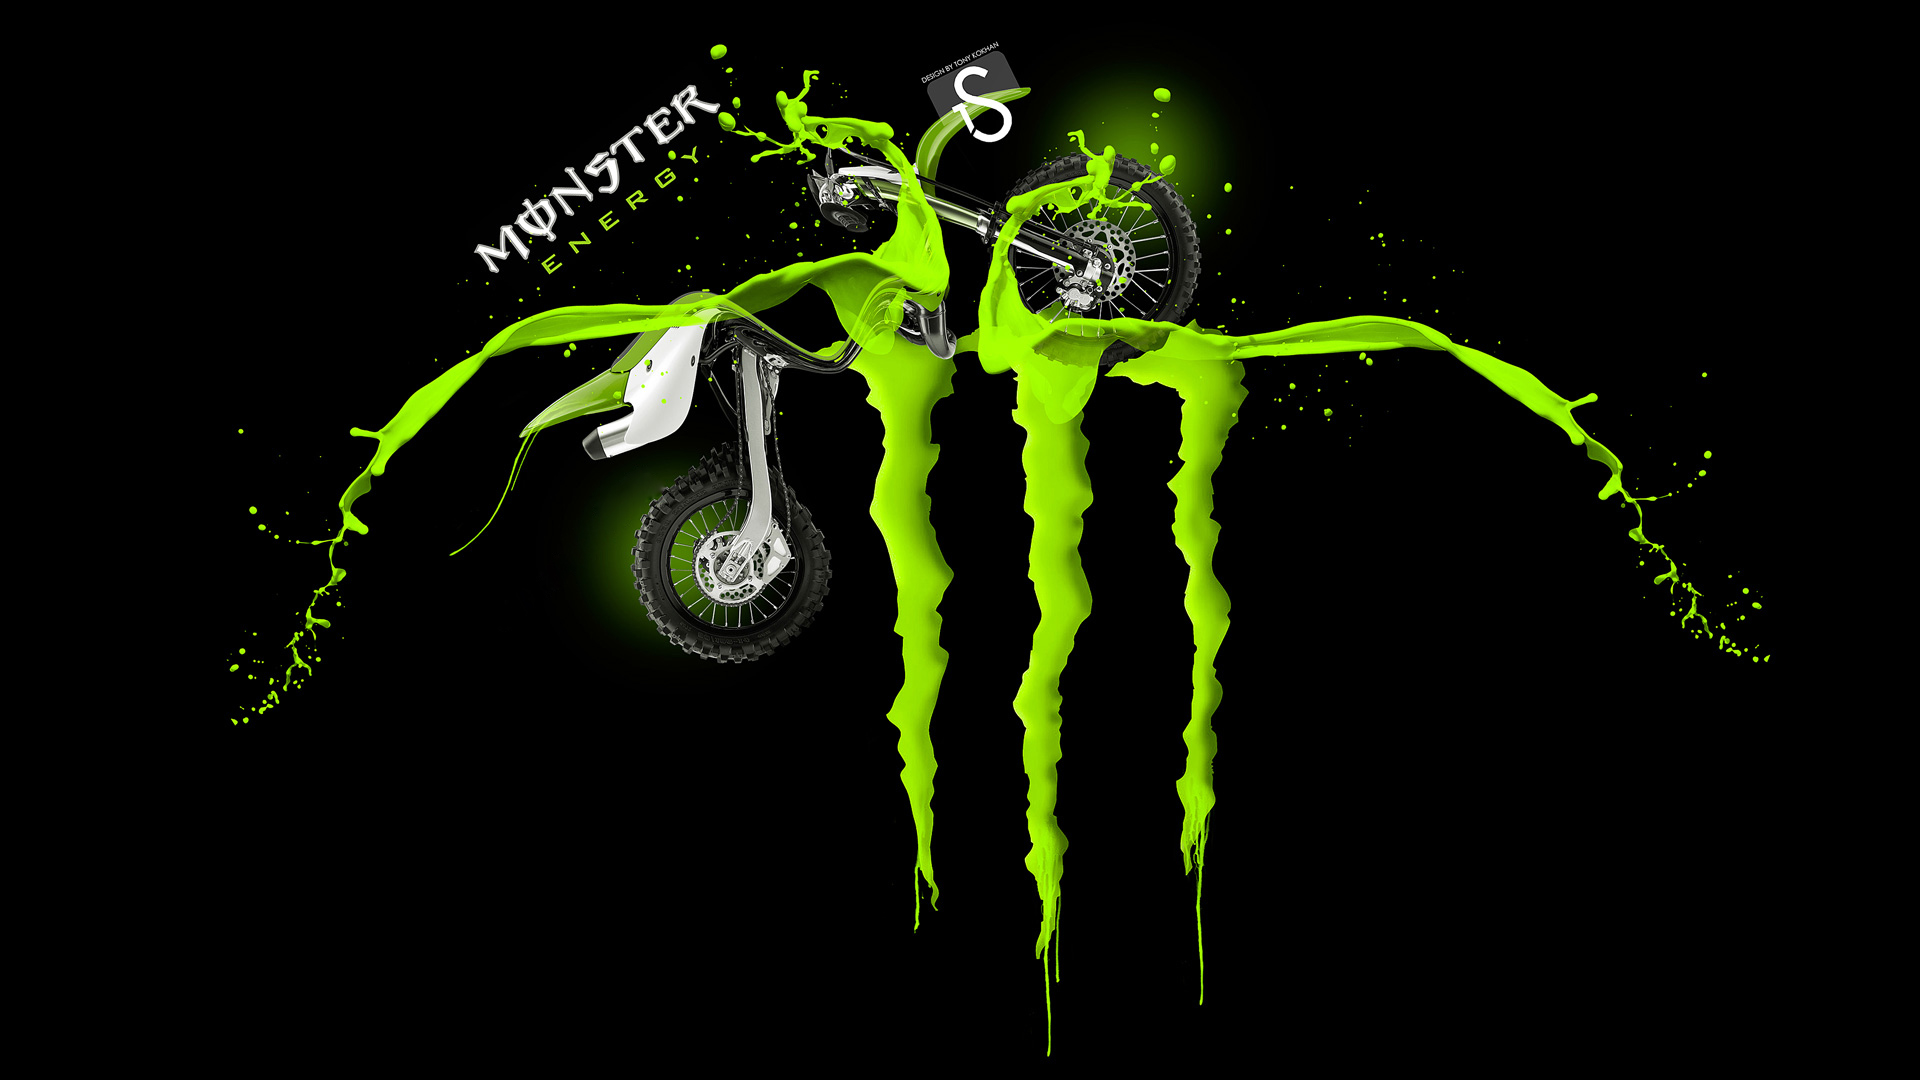 Monster Energy Wallpaper HD 1920x1080